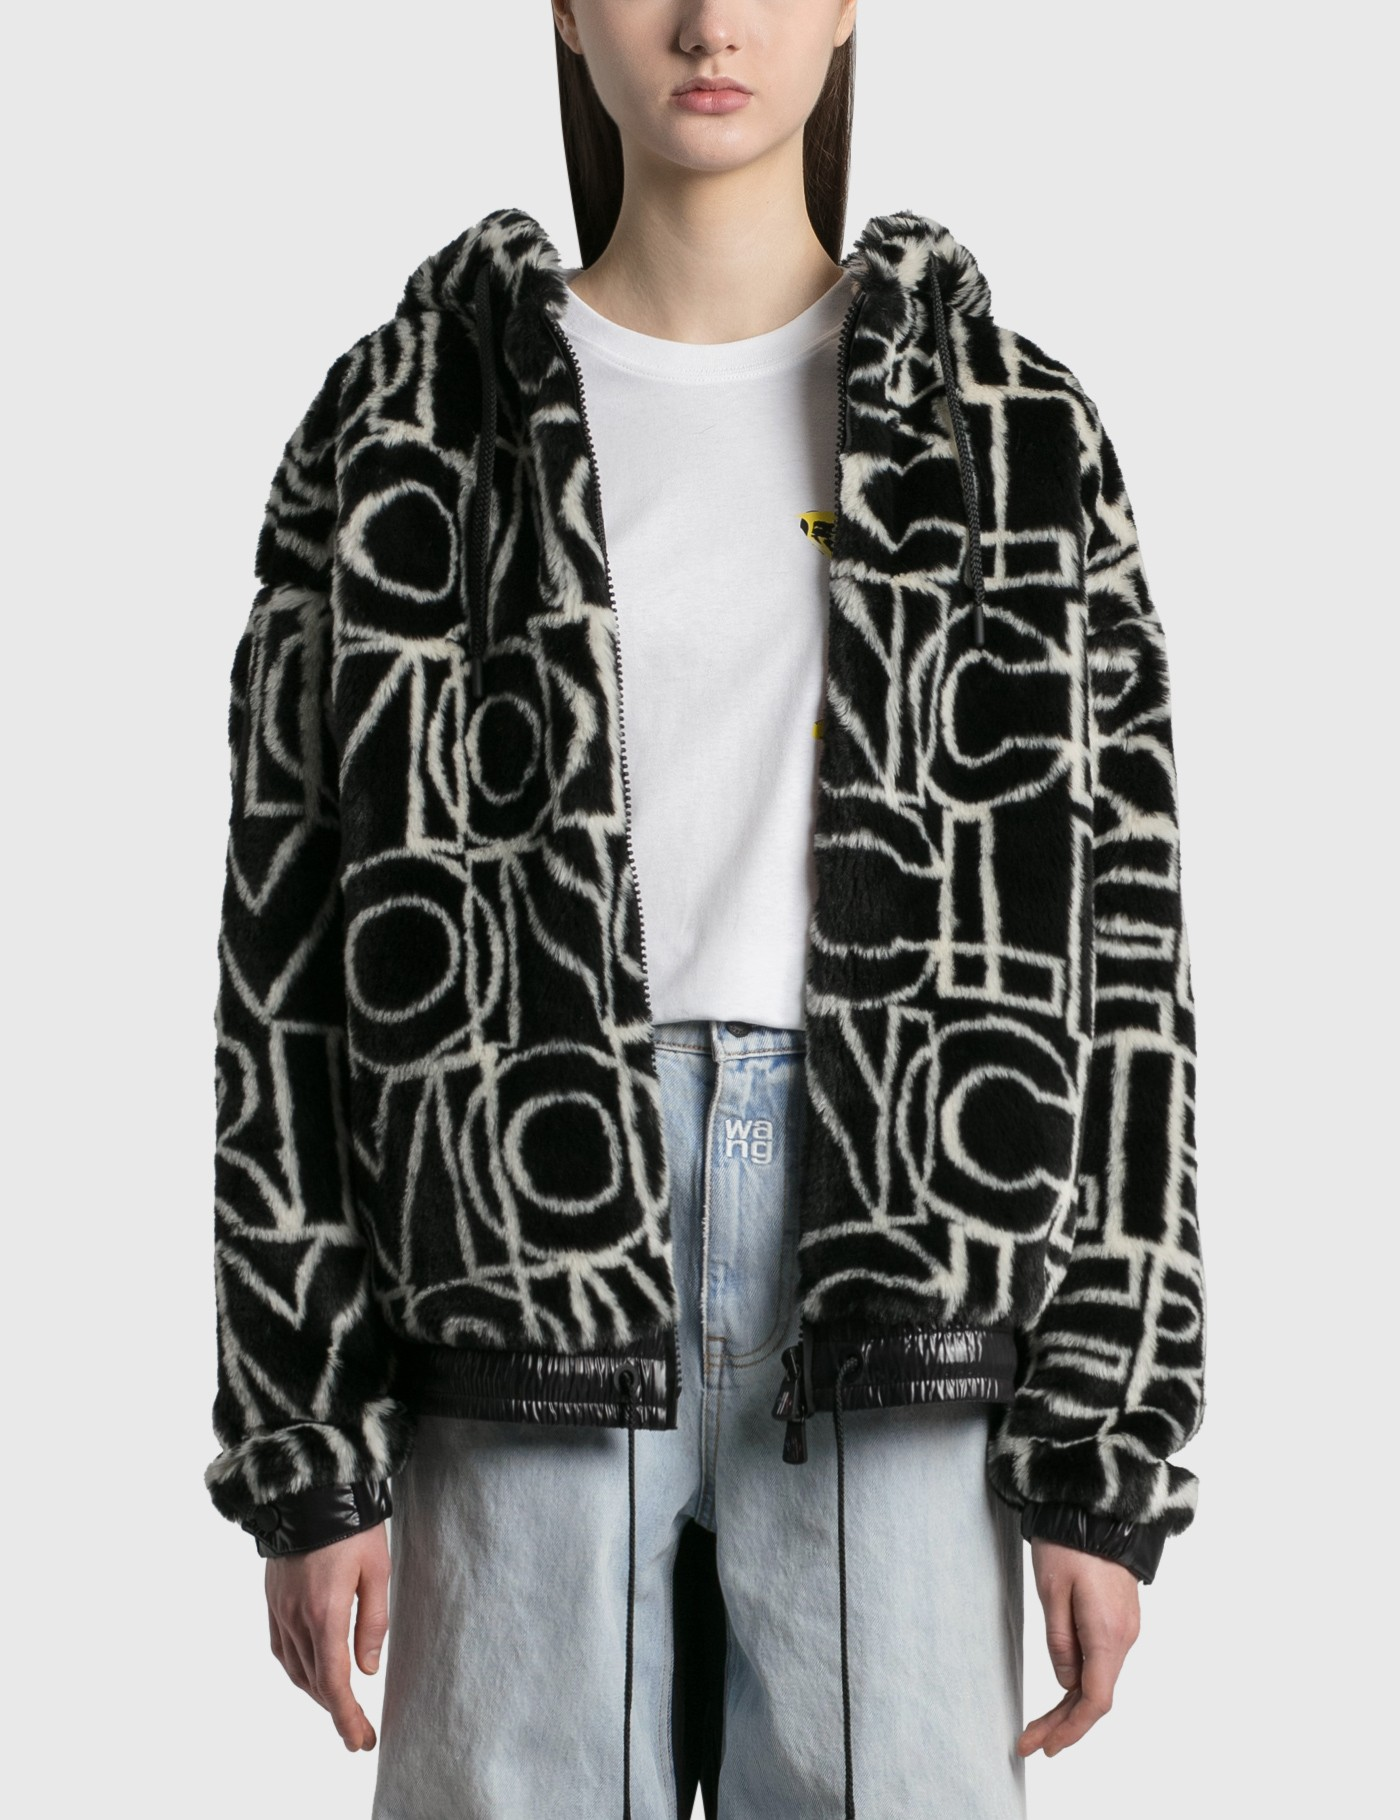 All Over Graphic Moncler Shearling Zip Jacket